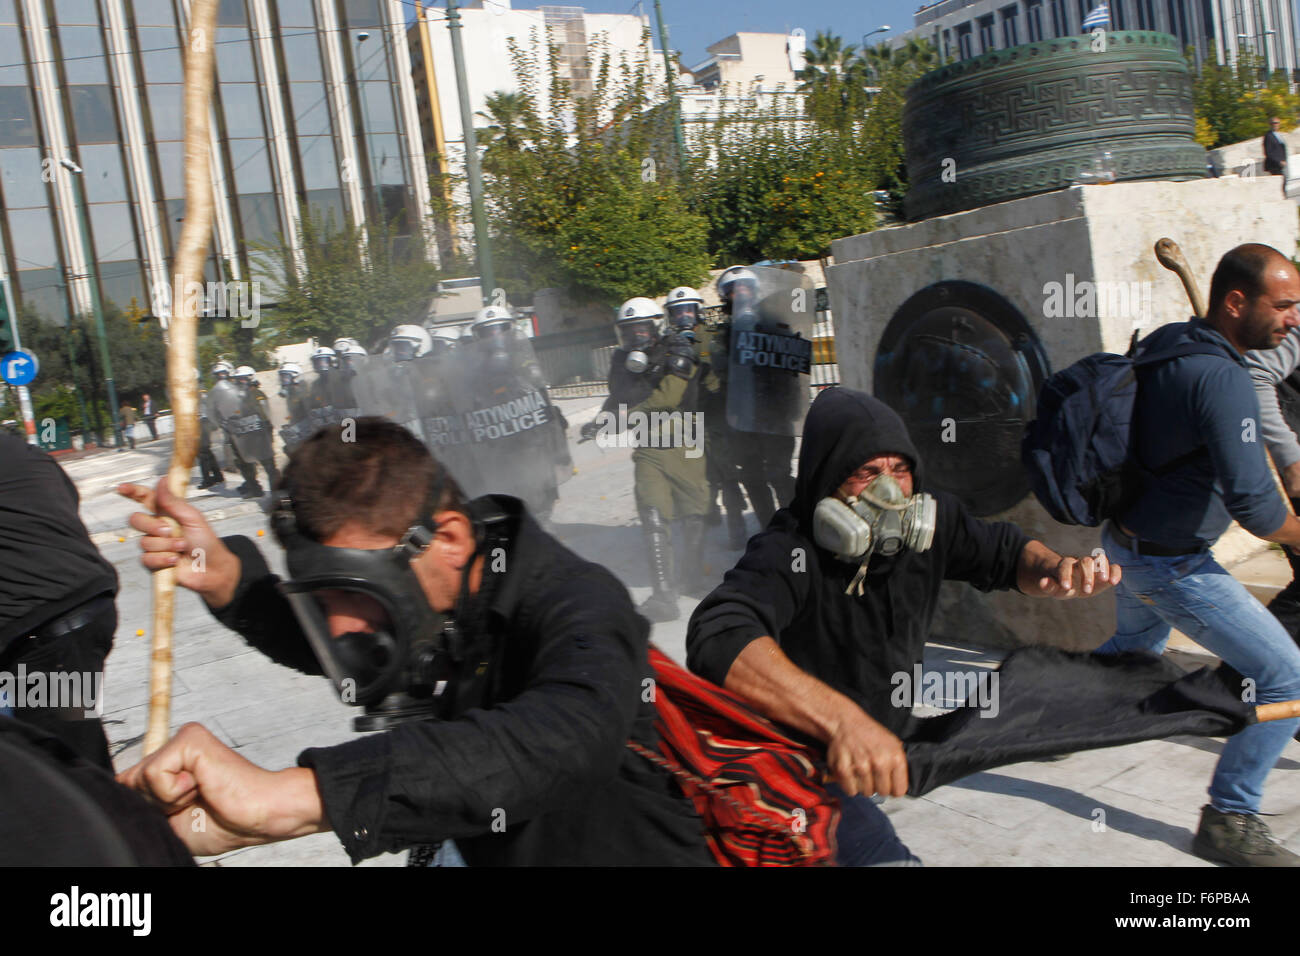 Athens Greece 18 November 2015. Greek farmers protesting over planned tax and pension reforms demanded by the country's - Stock Image